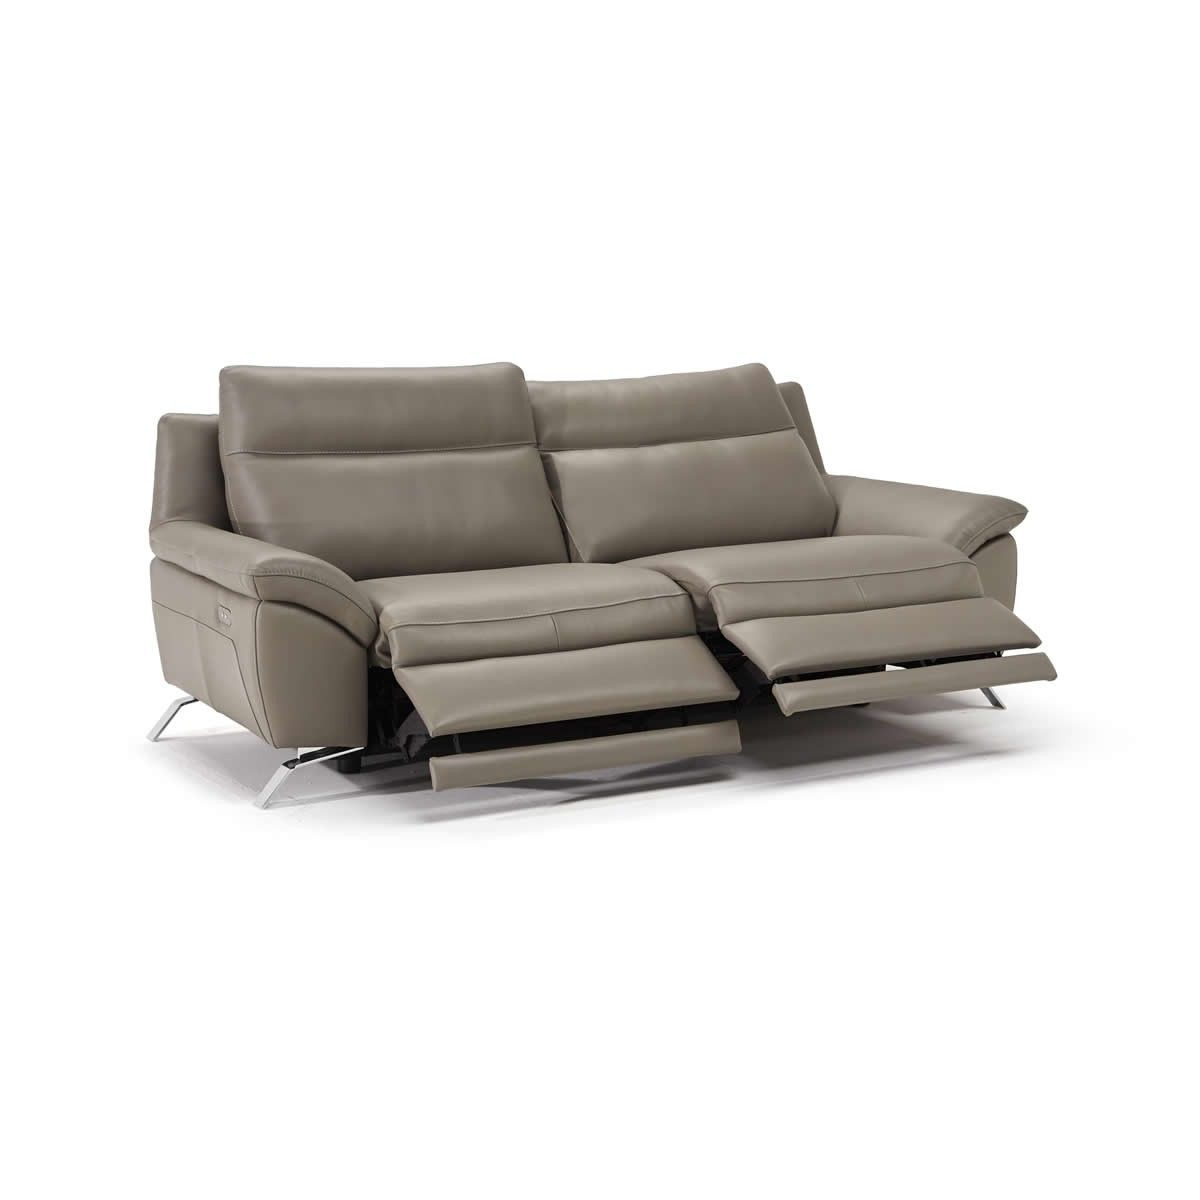 Sofa Beds Orlando Loveseat with Recliners